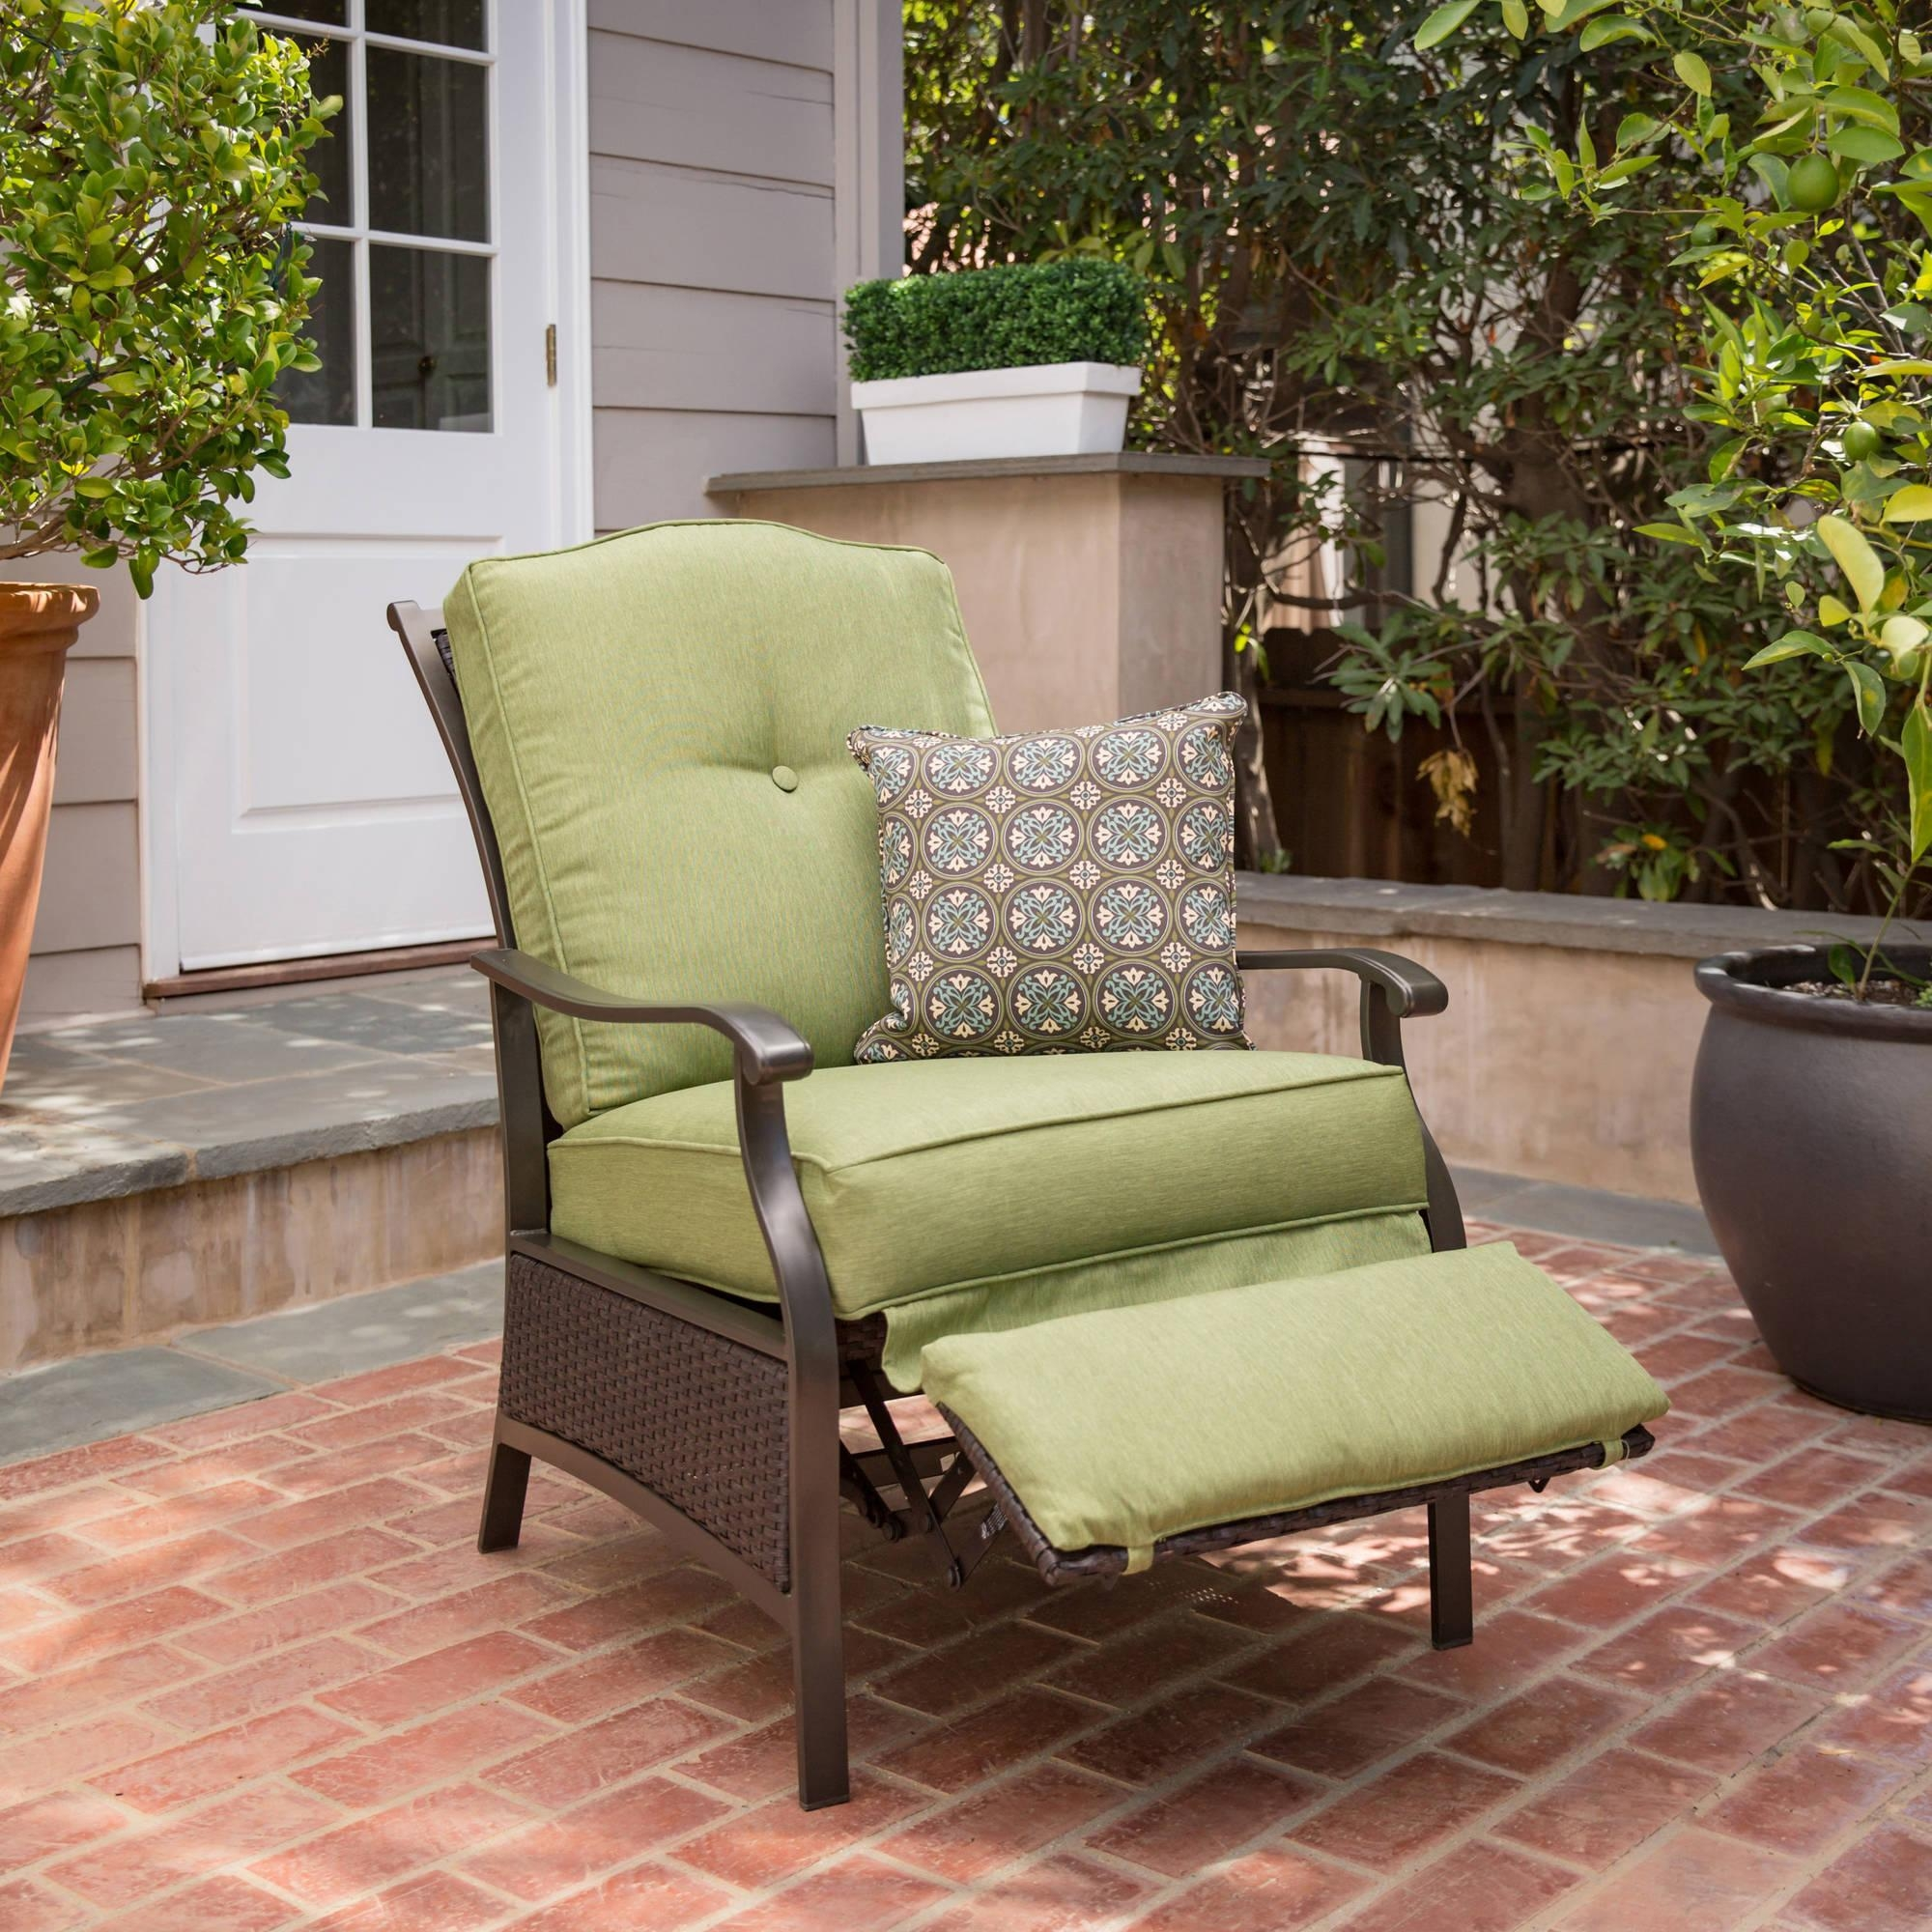 Patio Furniture – Walmart Intended For Outdoor Sofas And Chairs (Image 14 of 20)